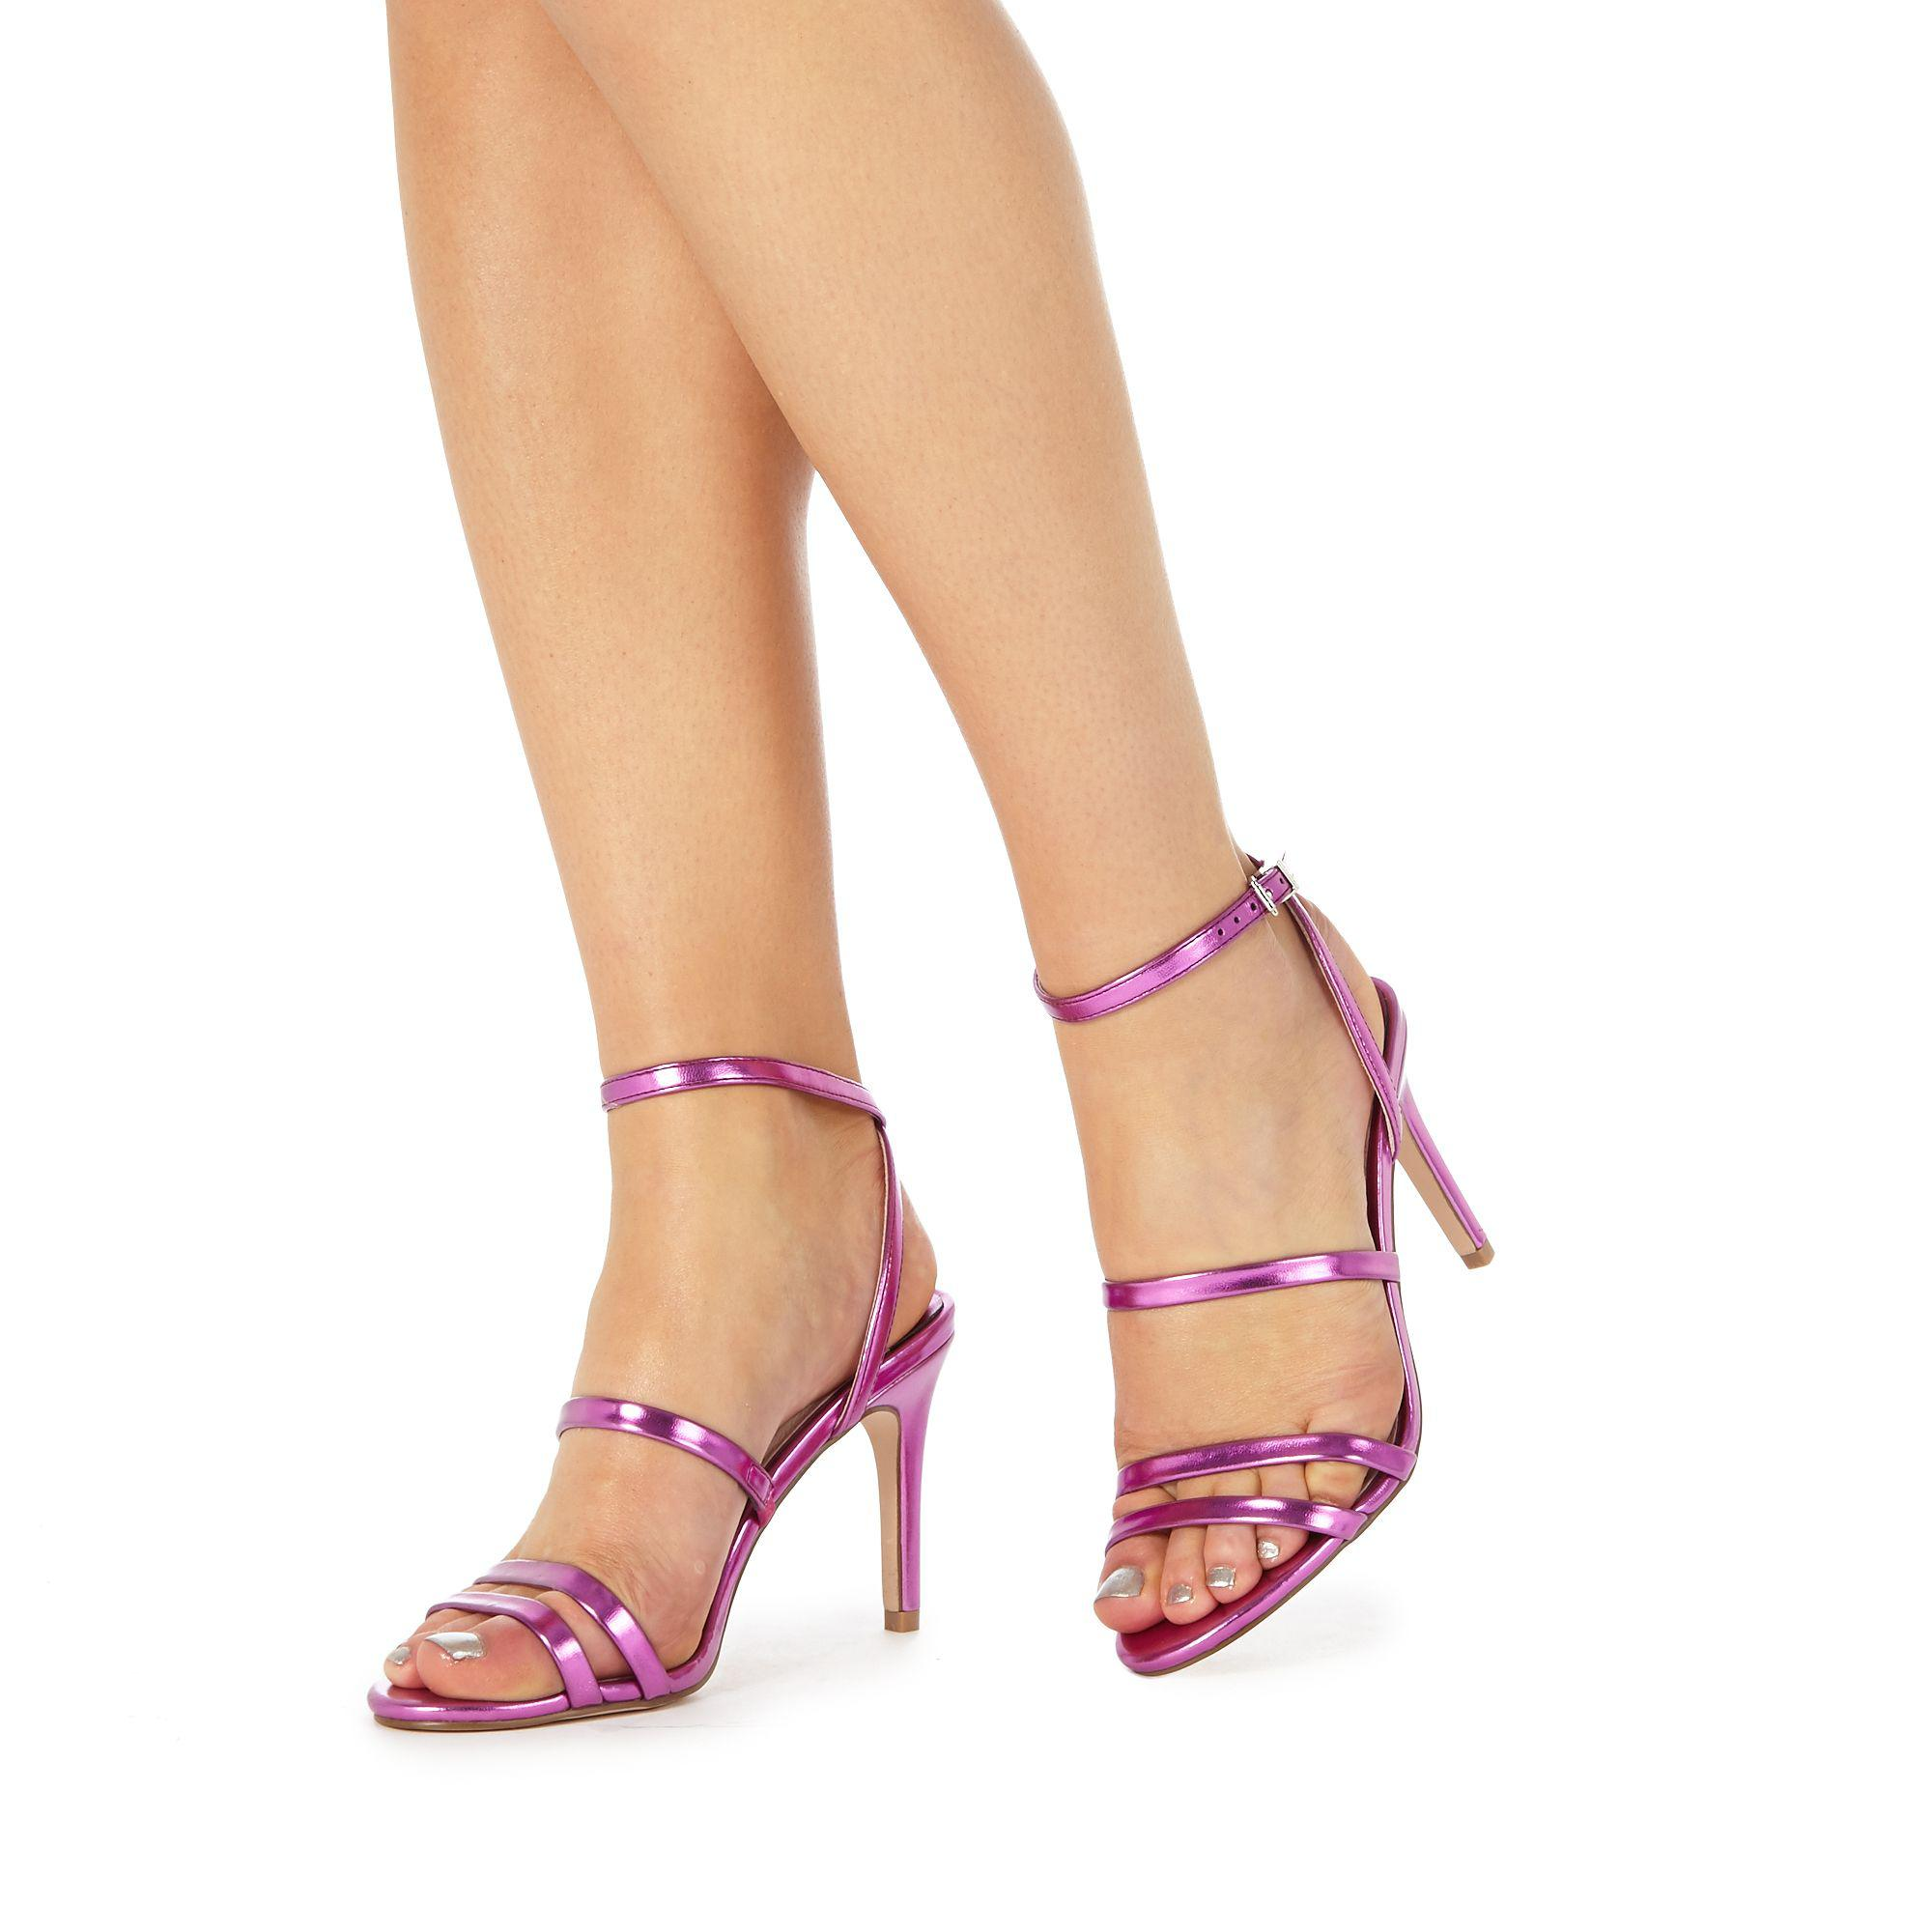 02c59298a03e Faith Pink  disco  High Stiletto Heel Ankle Strap Sandals in Pink - Lyst